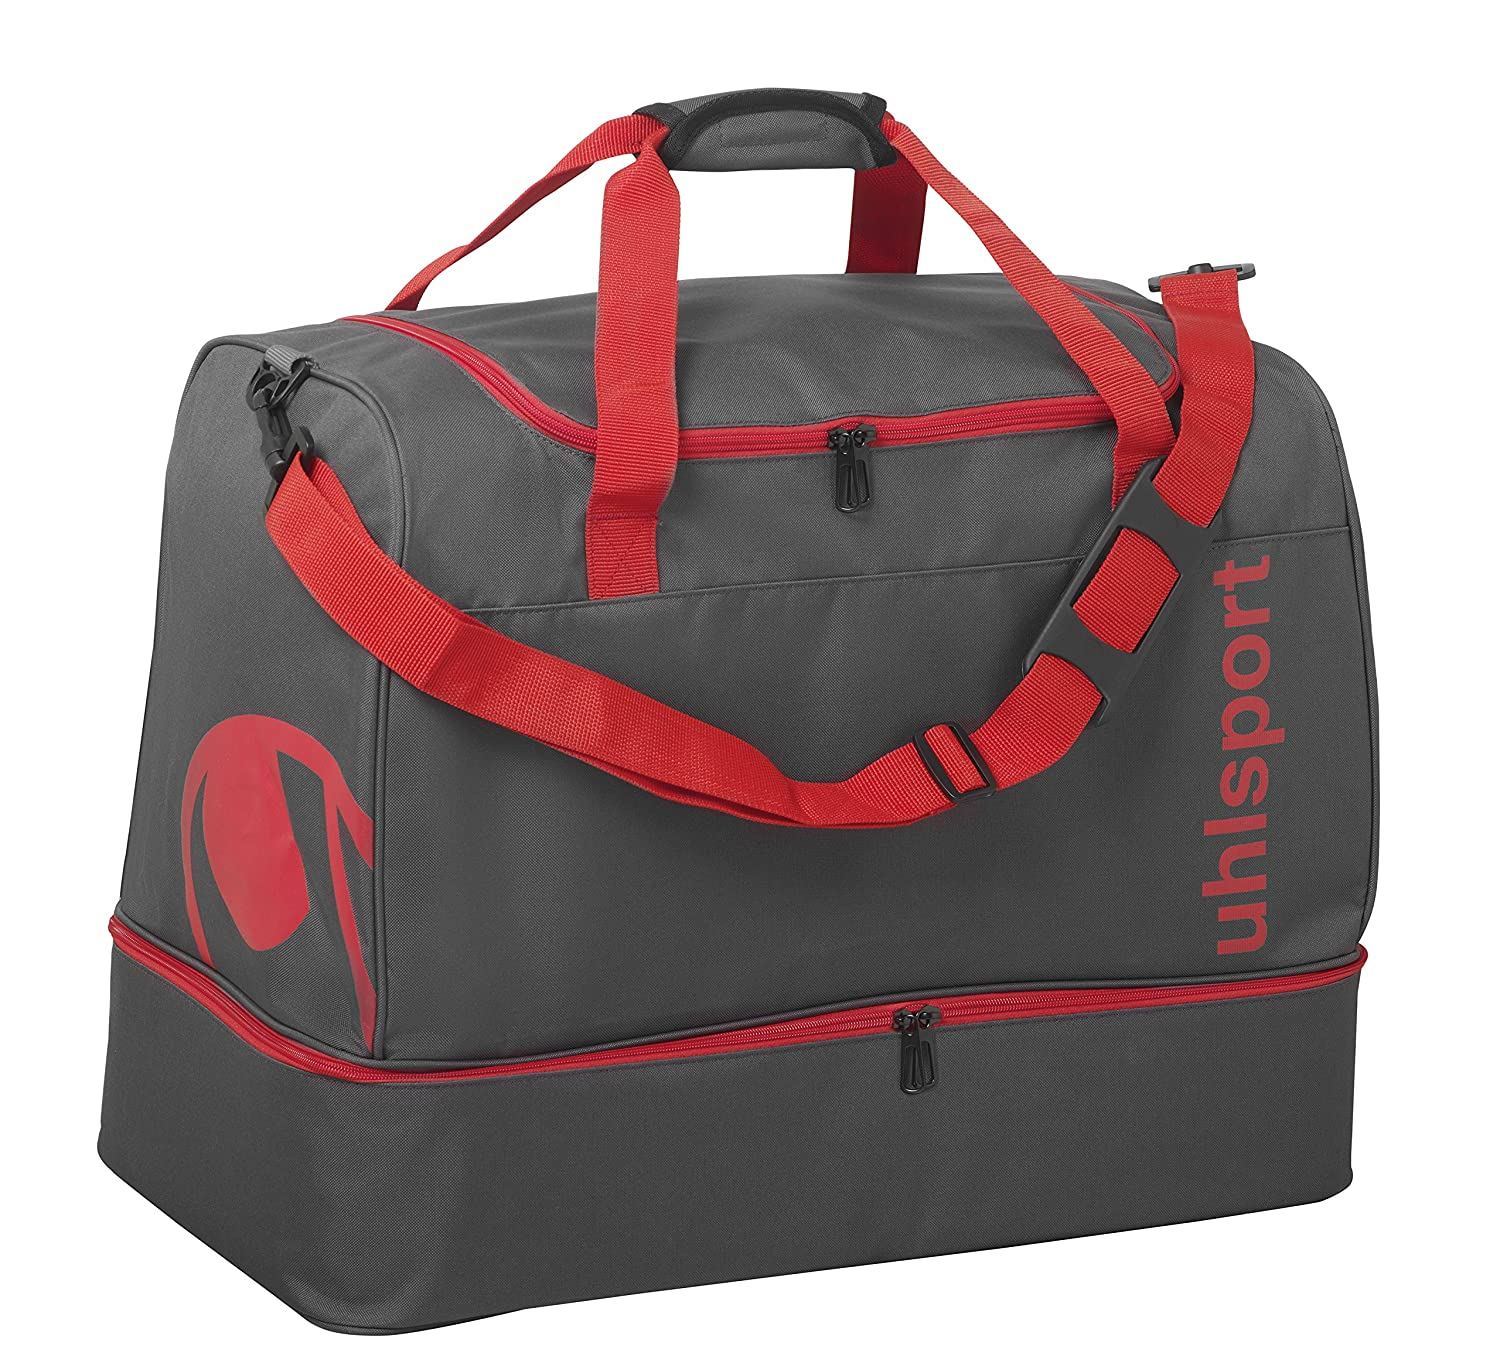 uhlsport Essential 2.0 Players Bag 75L 45 cm 75 liters Mehrfarbig (Anthracita/Rojo) 100425603